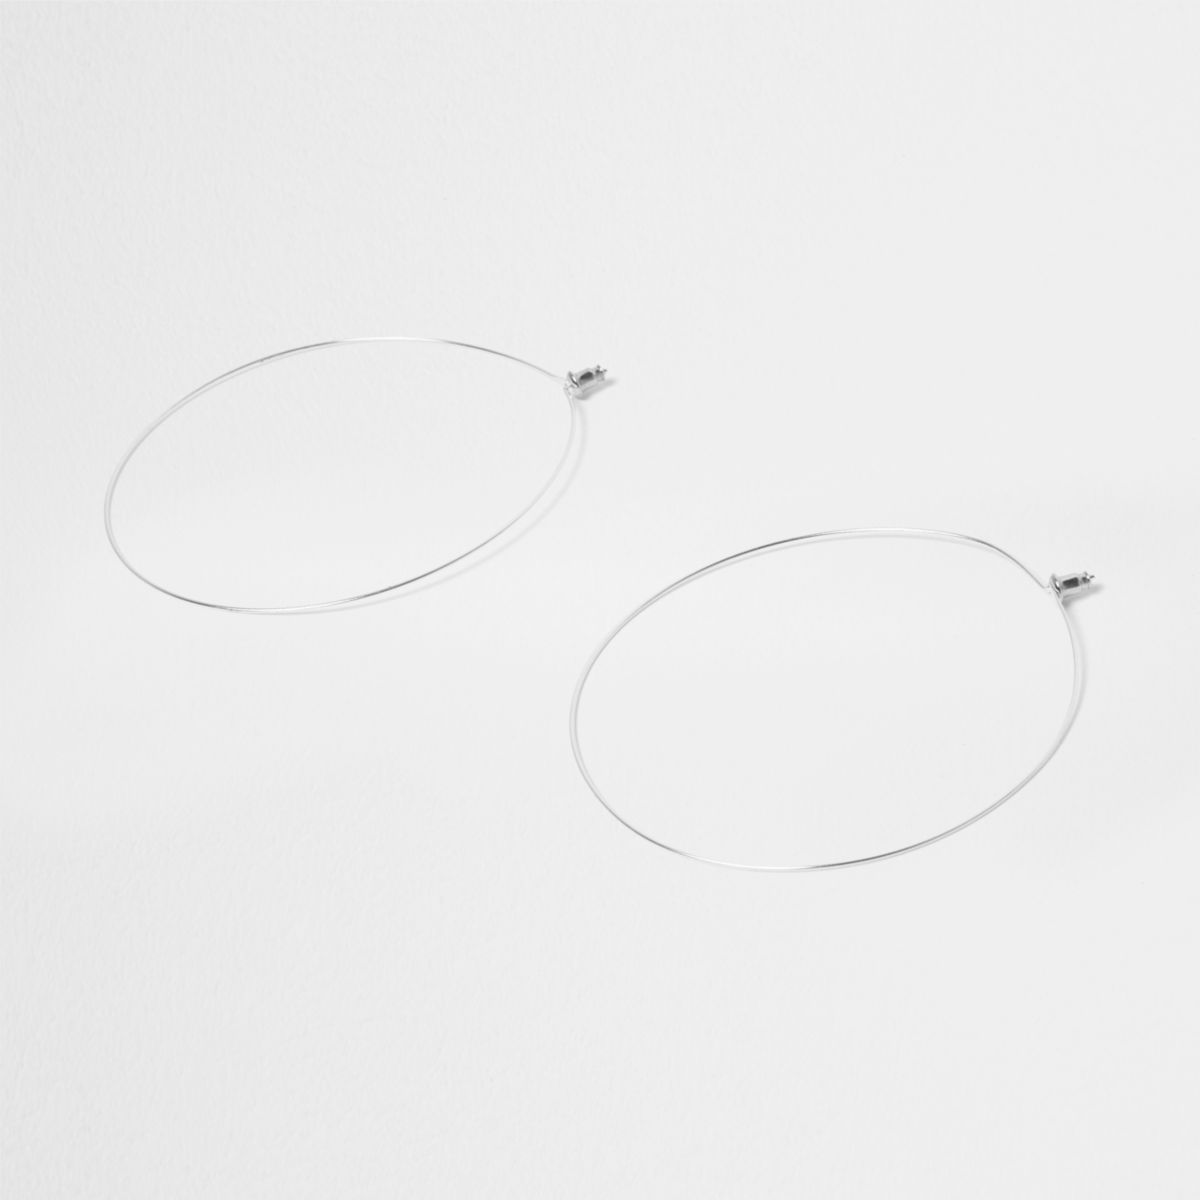 Silver tone ultra thin hoop earrings